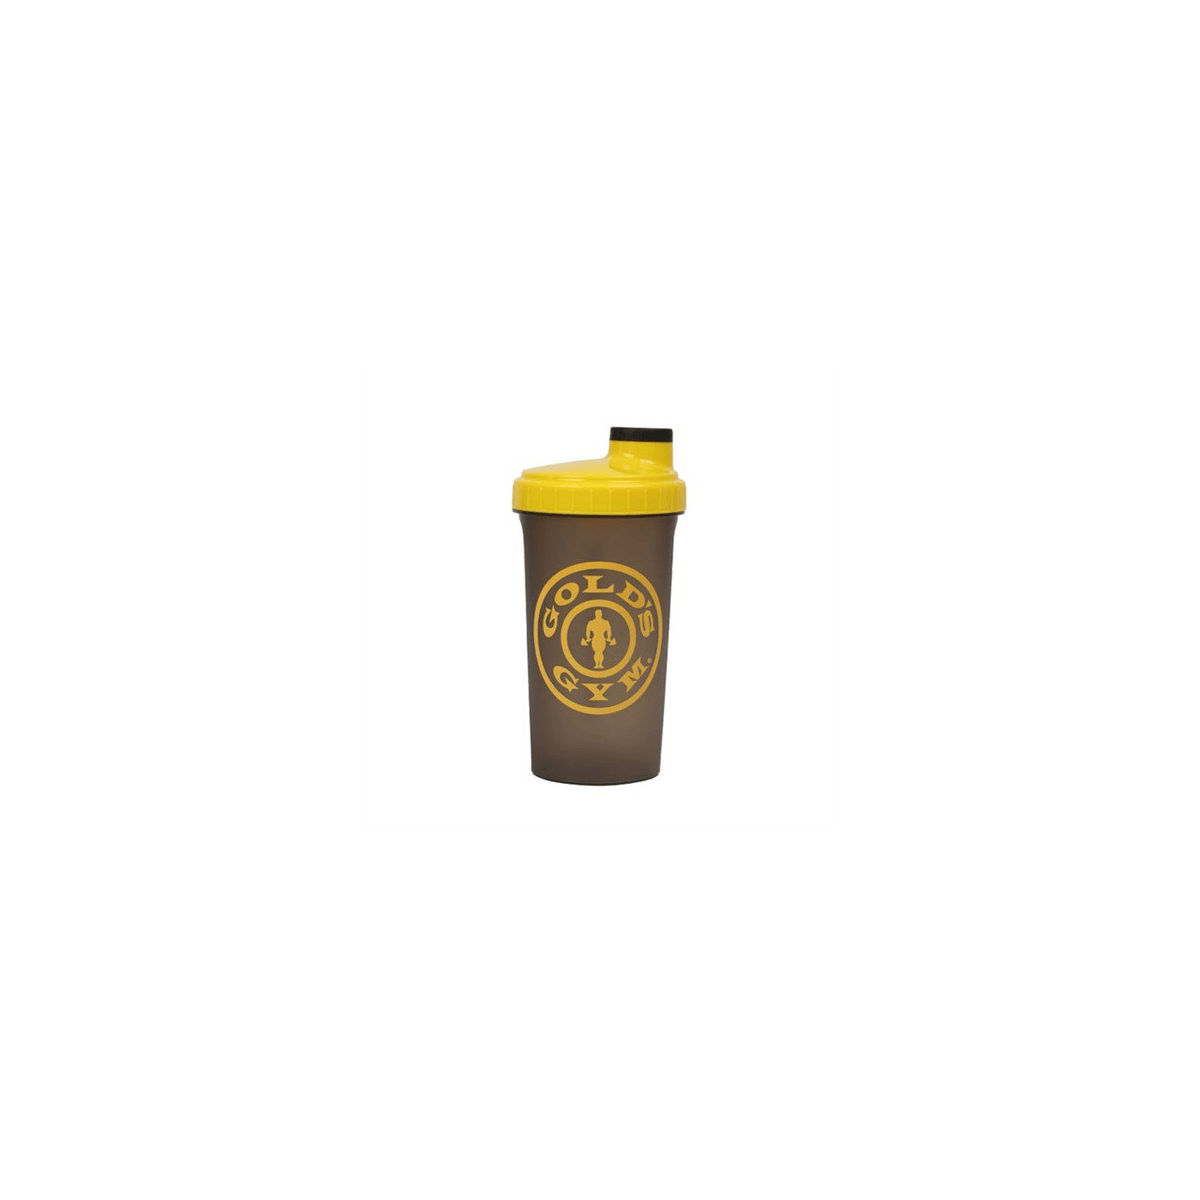 SHAKER GOLD'S GYM BLACK / GOLD